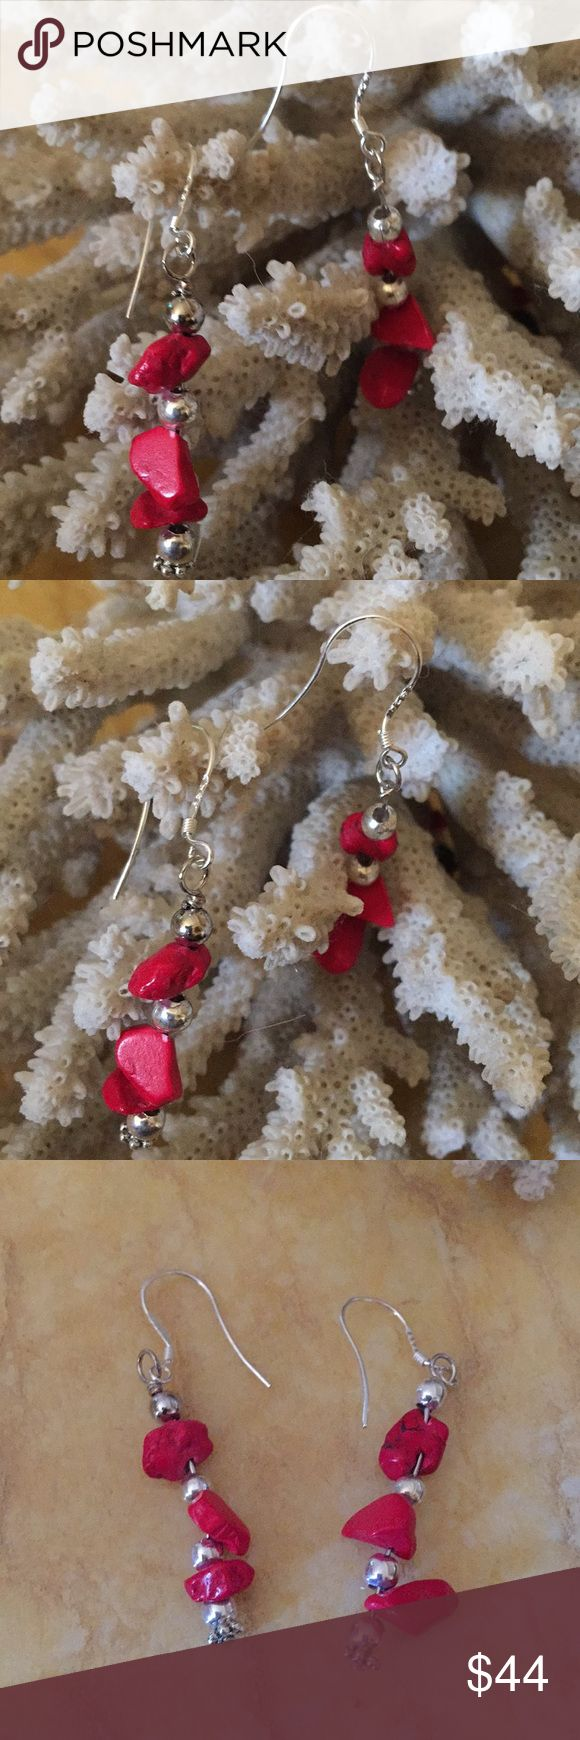 "925 coral earring Beautiful marked 925 red coral earring 2"" long coral earring Jewelry Earrings"